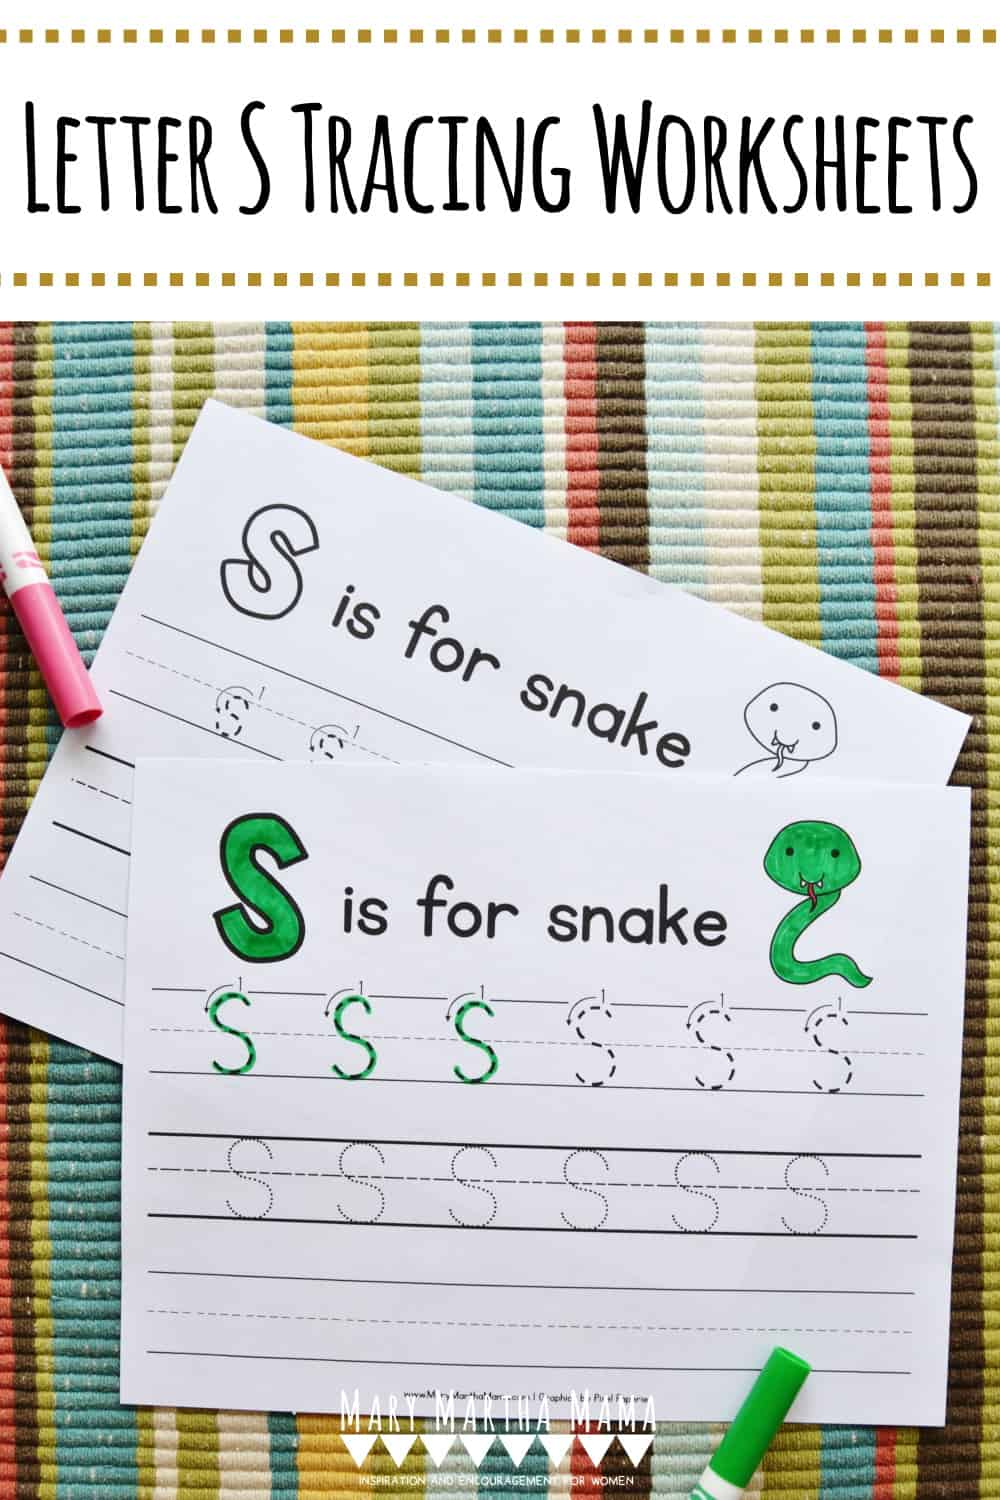 Use these free printable letter S tracing worksheets to help your kiddo learn proper letter formation for upper and lower case letter S.